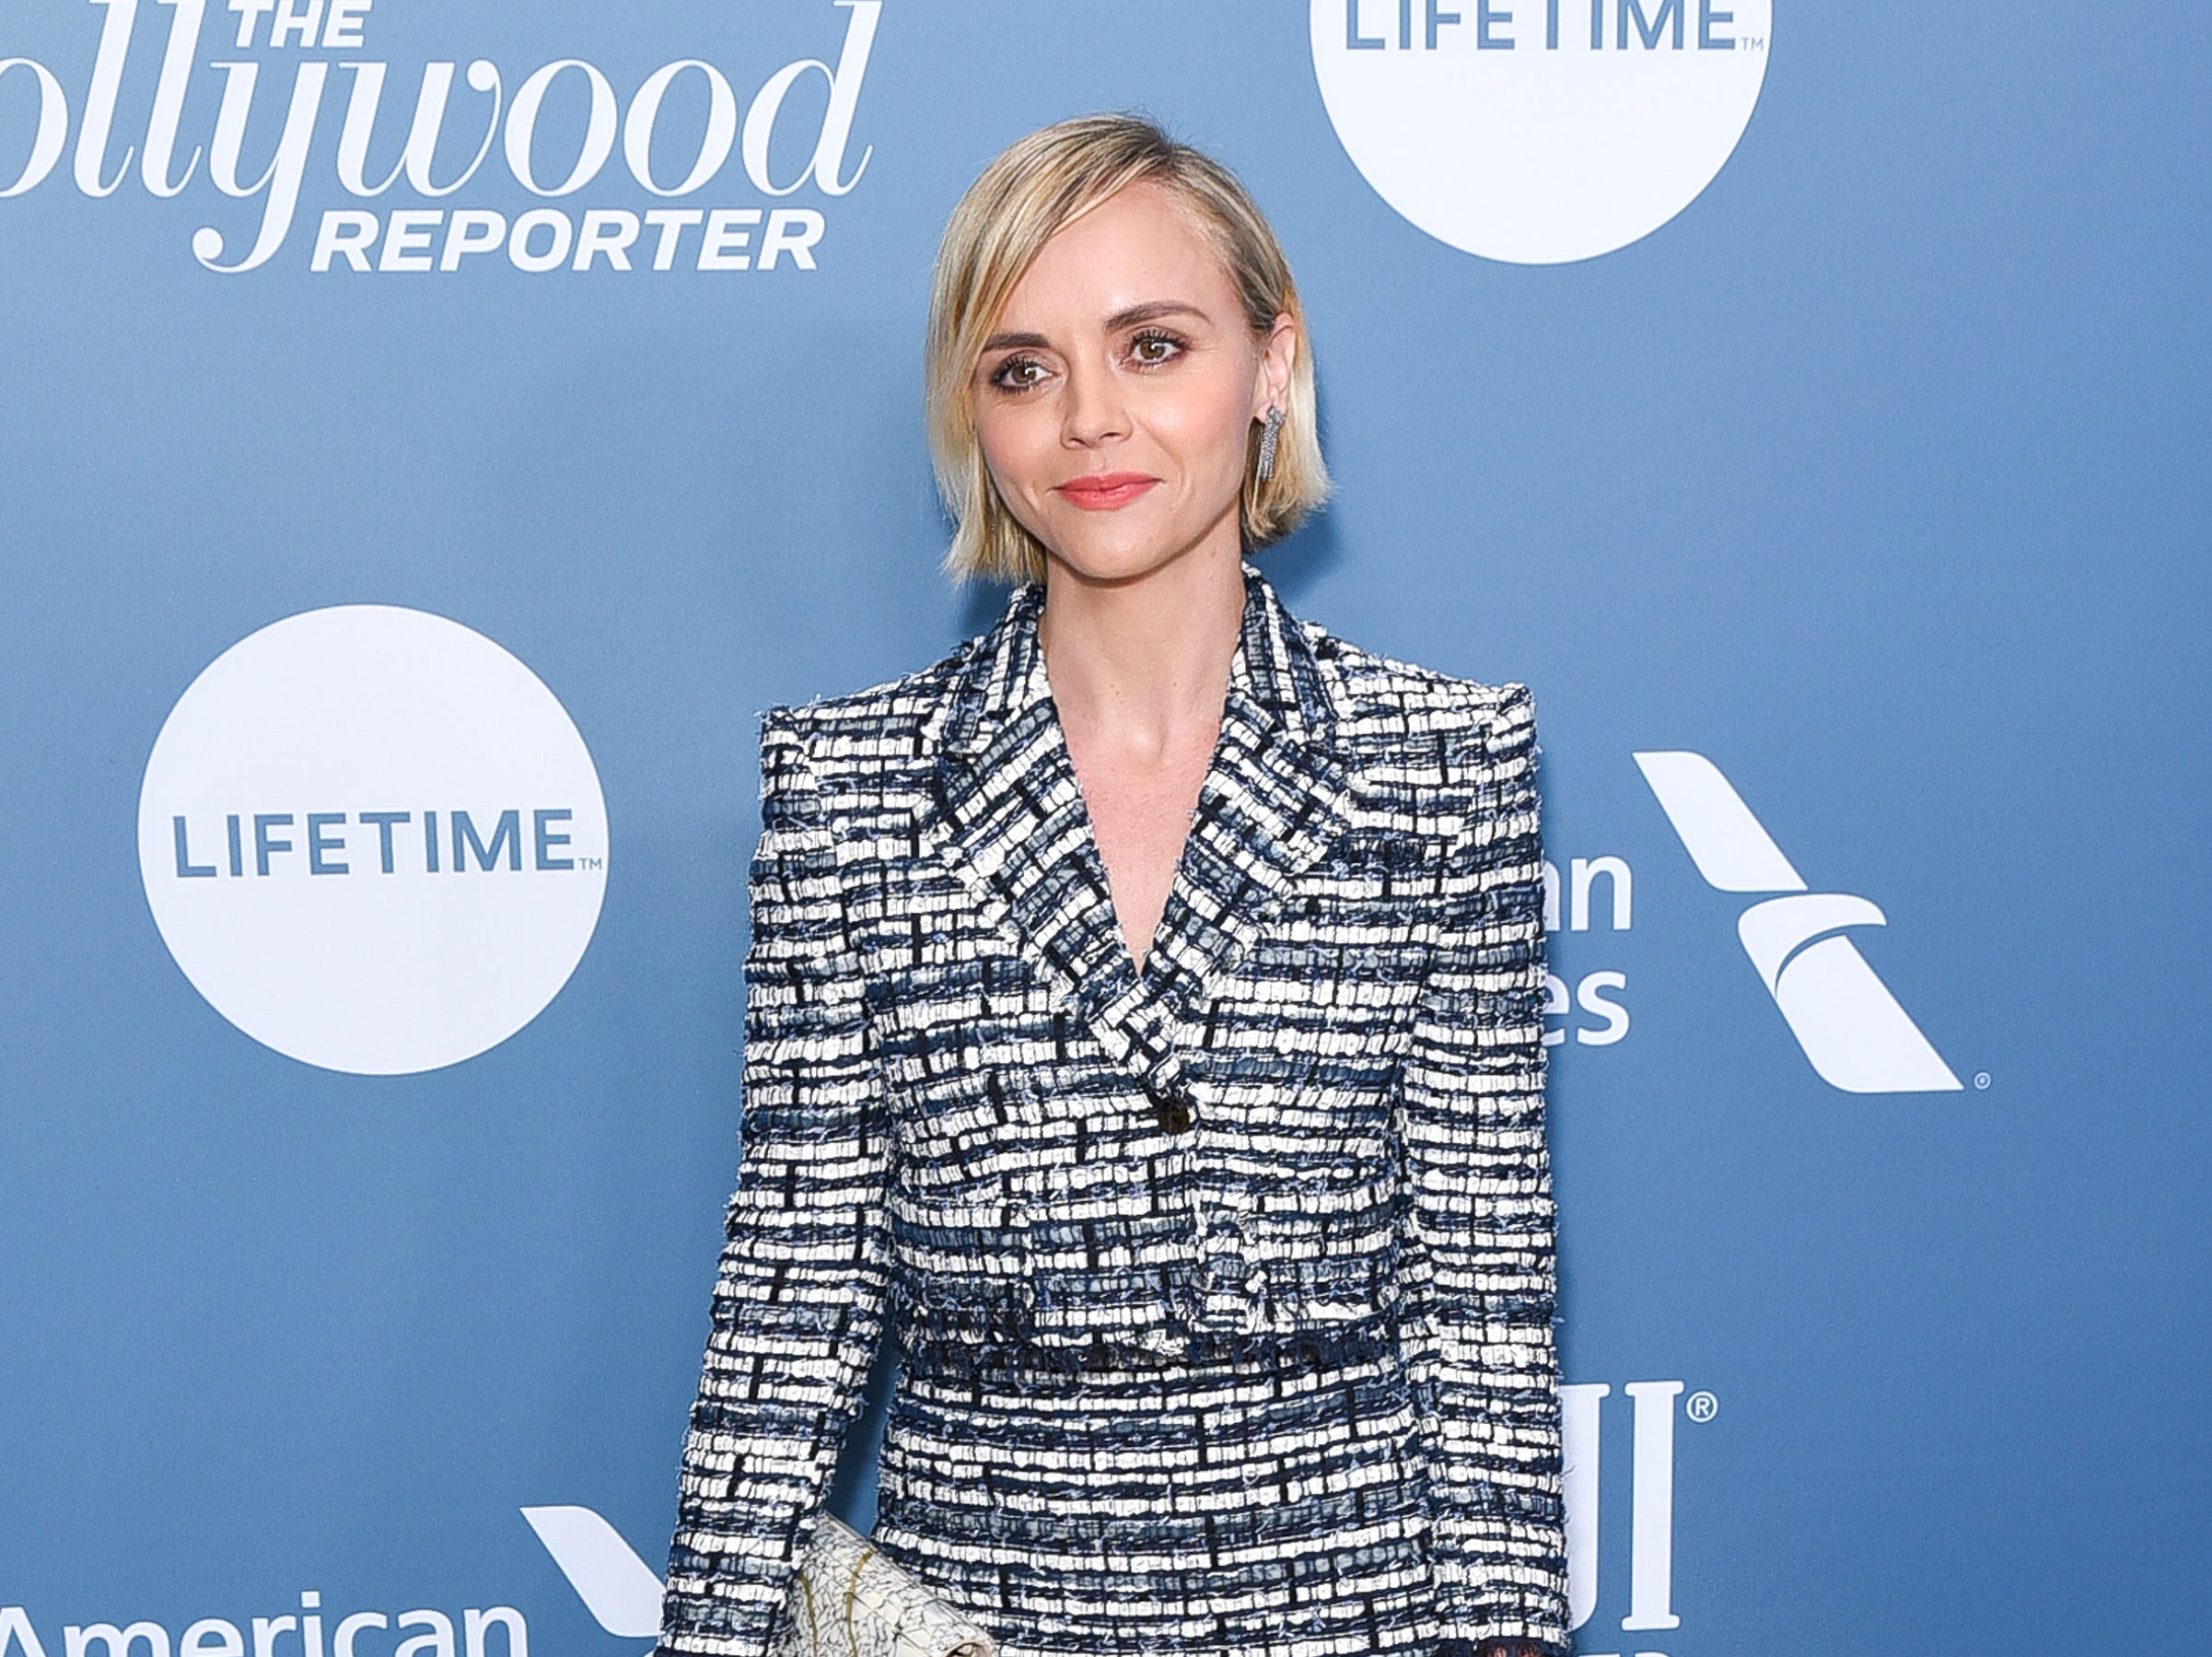 LOS ANGELES, CALIFORNIA - DECEMBER 05: Christina Ricci attends The Hollywood Reporter's Power 100 Women In Entertainment at Milk Studios on December 05, 2018 in Los Angeles, California. (Photo by Presley Ann/Getty Images) ORG XMIT: 775264723 ORIG FILE ID: 1077829328